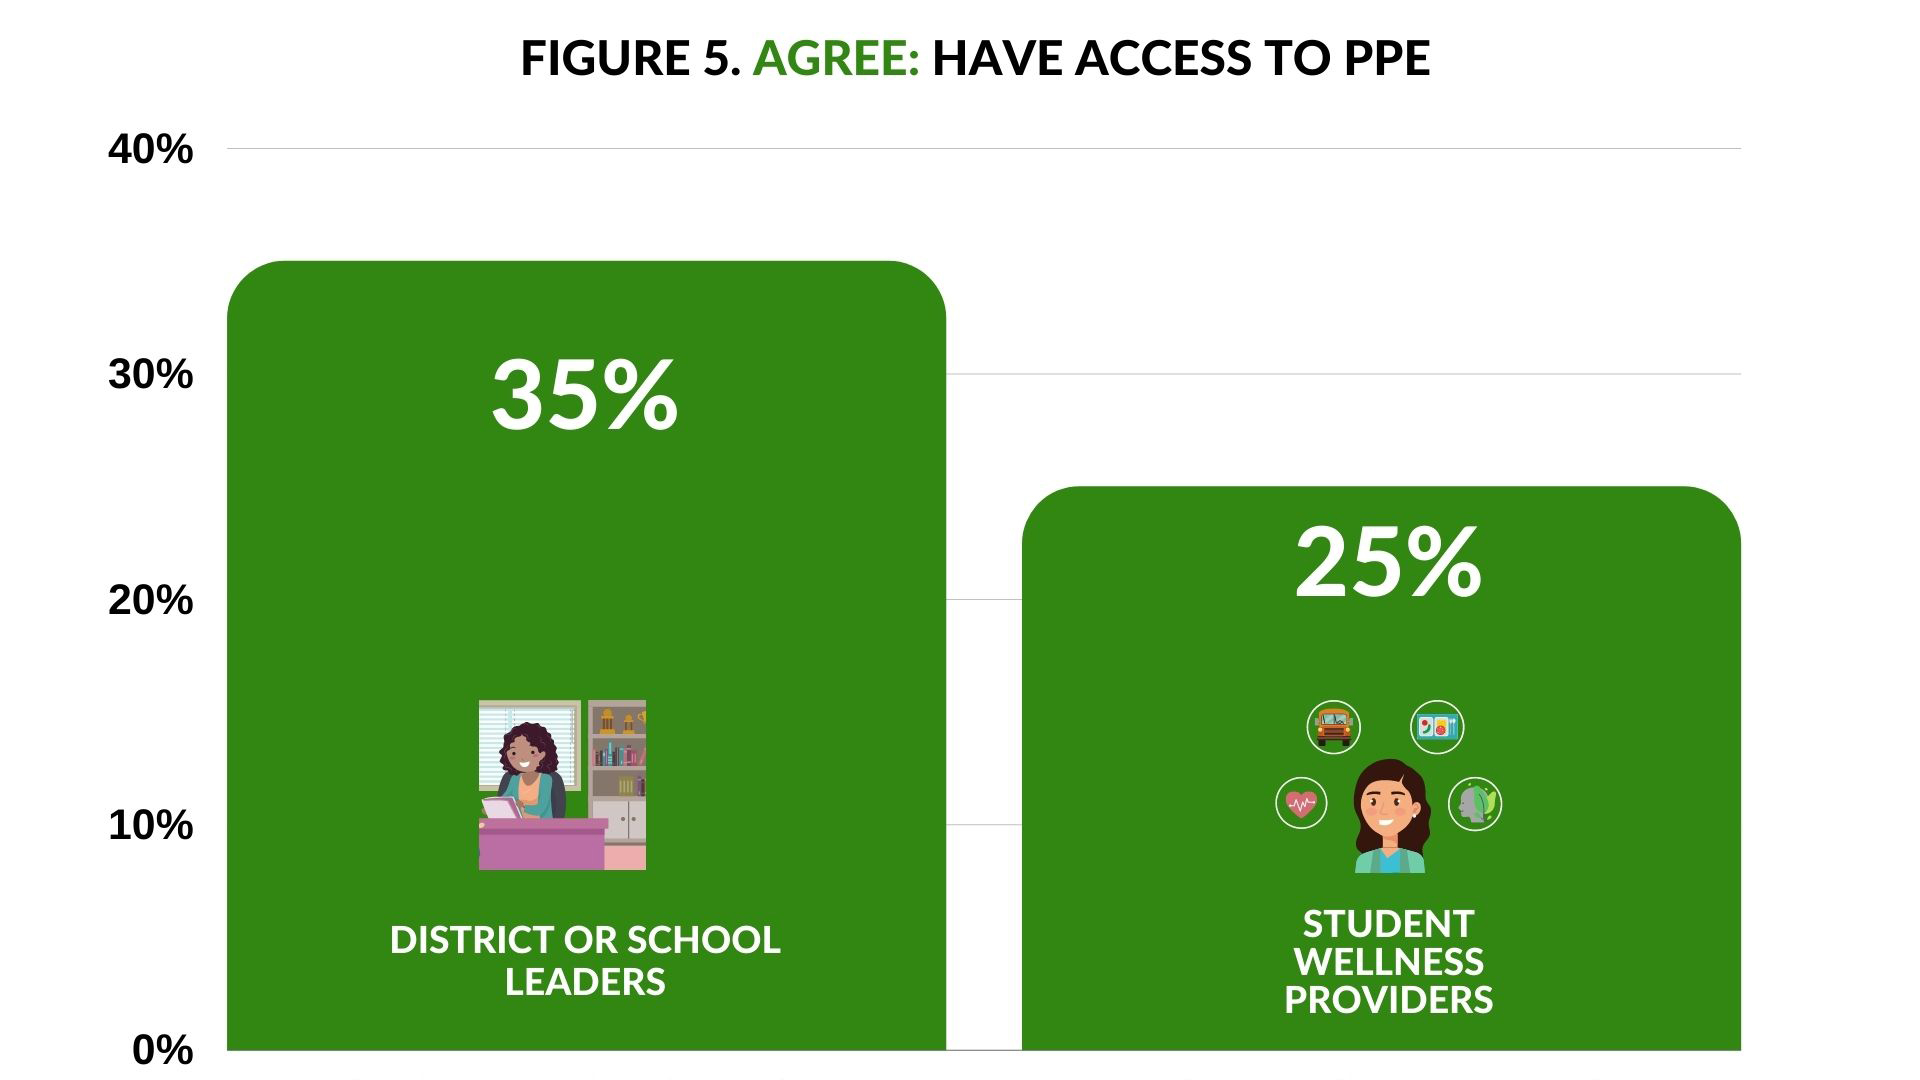 Agree Have access tp PPE - 35% District of School Leaders; 25% Student Wellness Providers